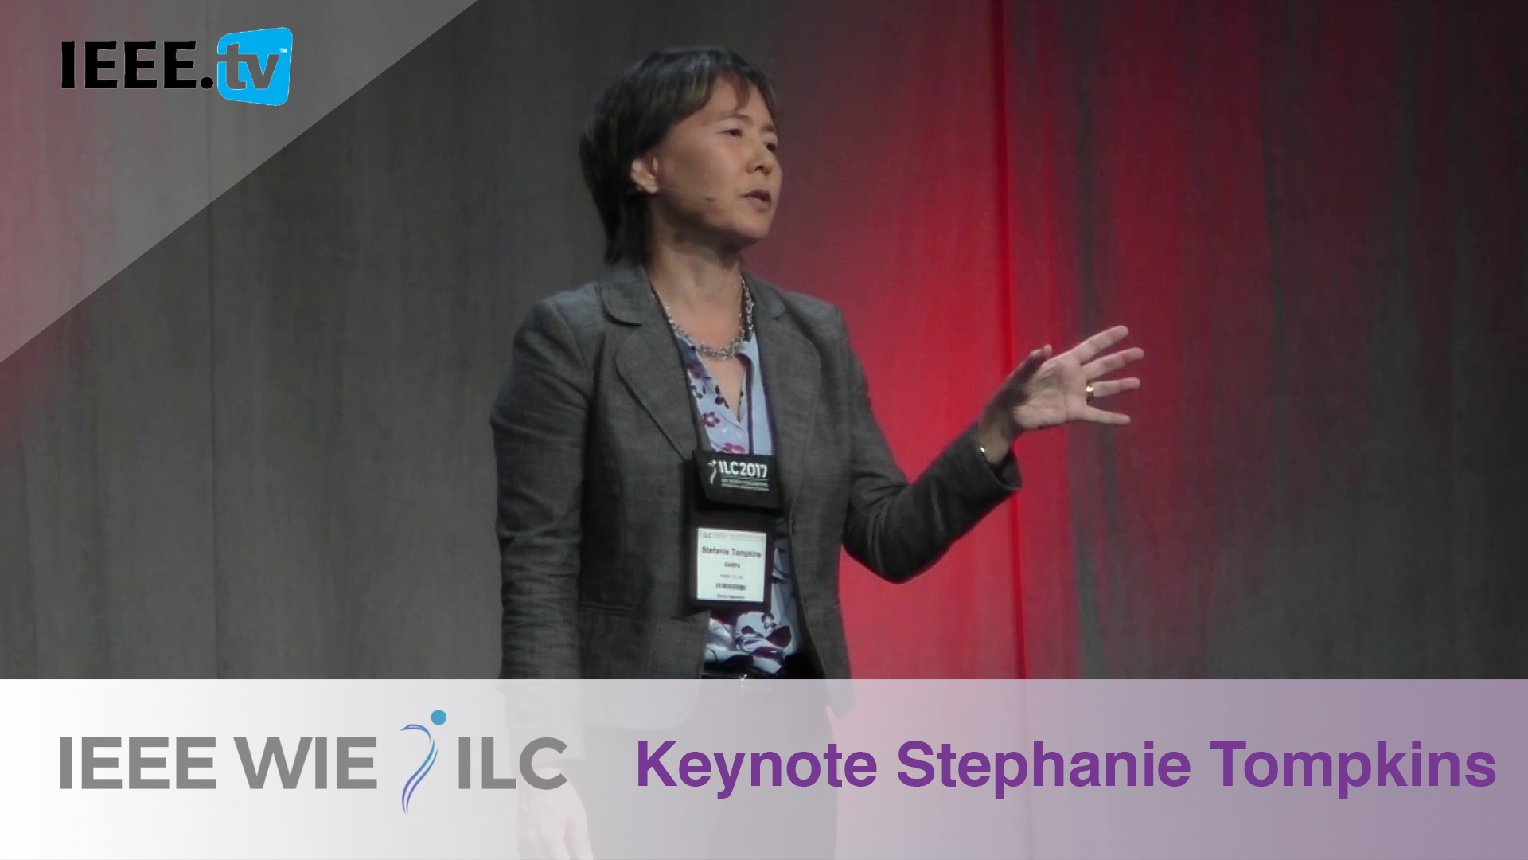 Javelins Into the Future with Stefanie Tompkins - IEEE WIE ILC 2017